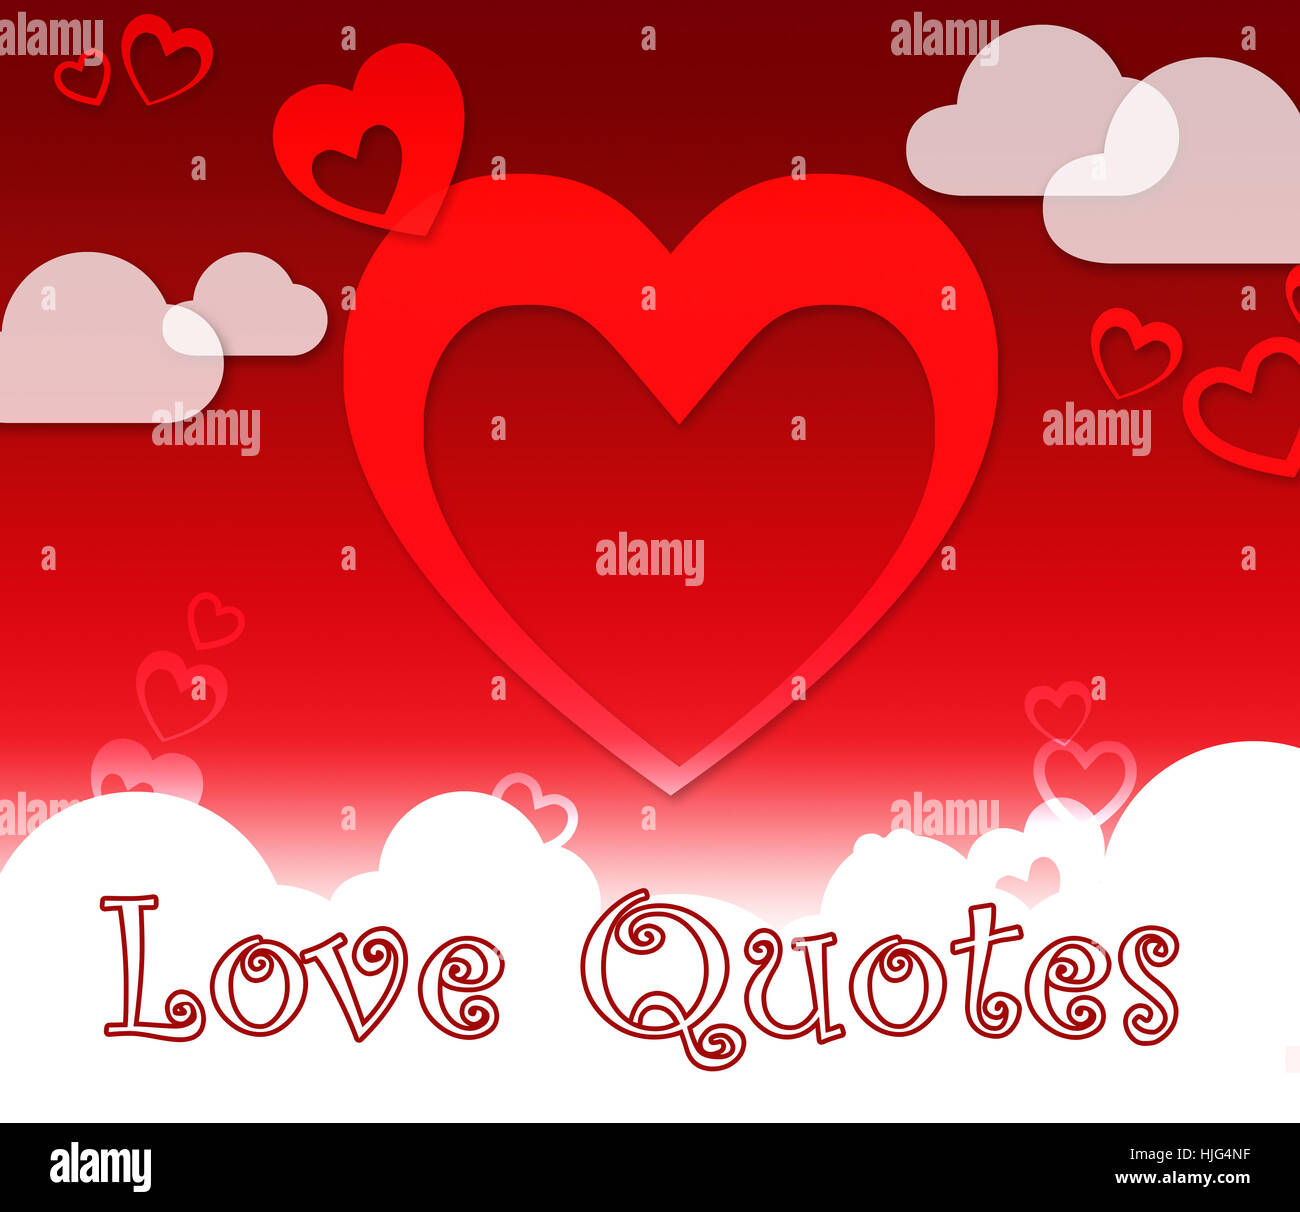 Love Quotes Shows Extracts Inspiration Stock Photos Love Quotes